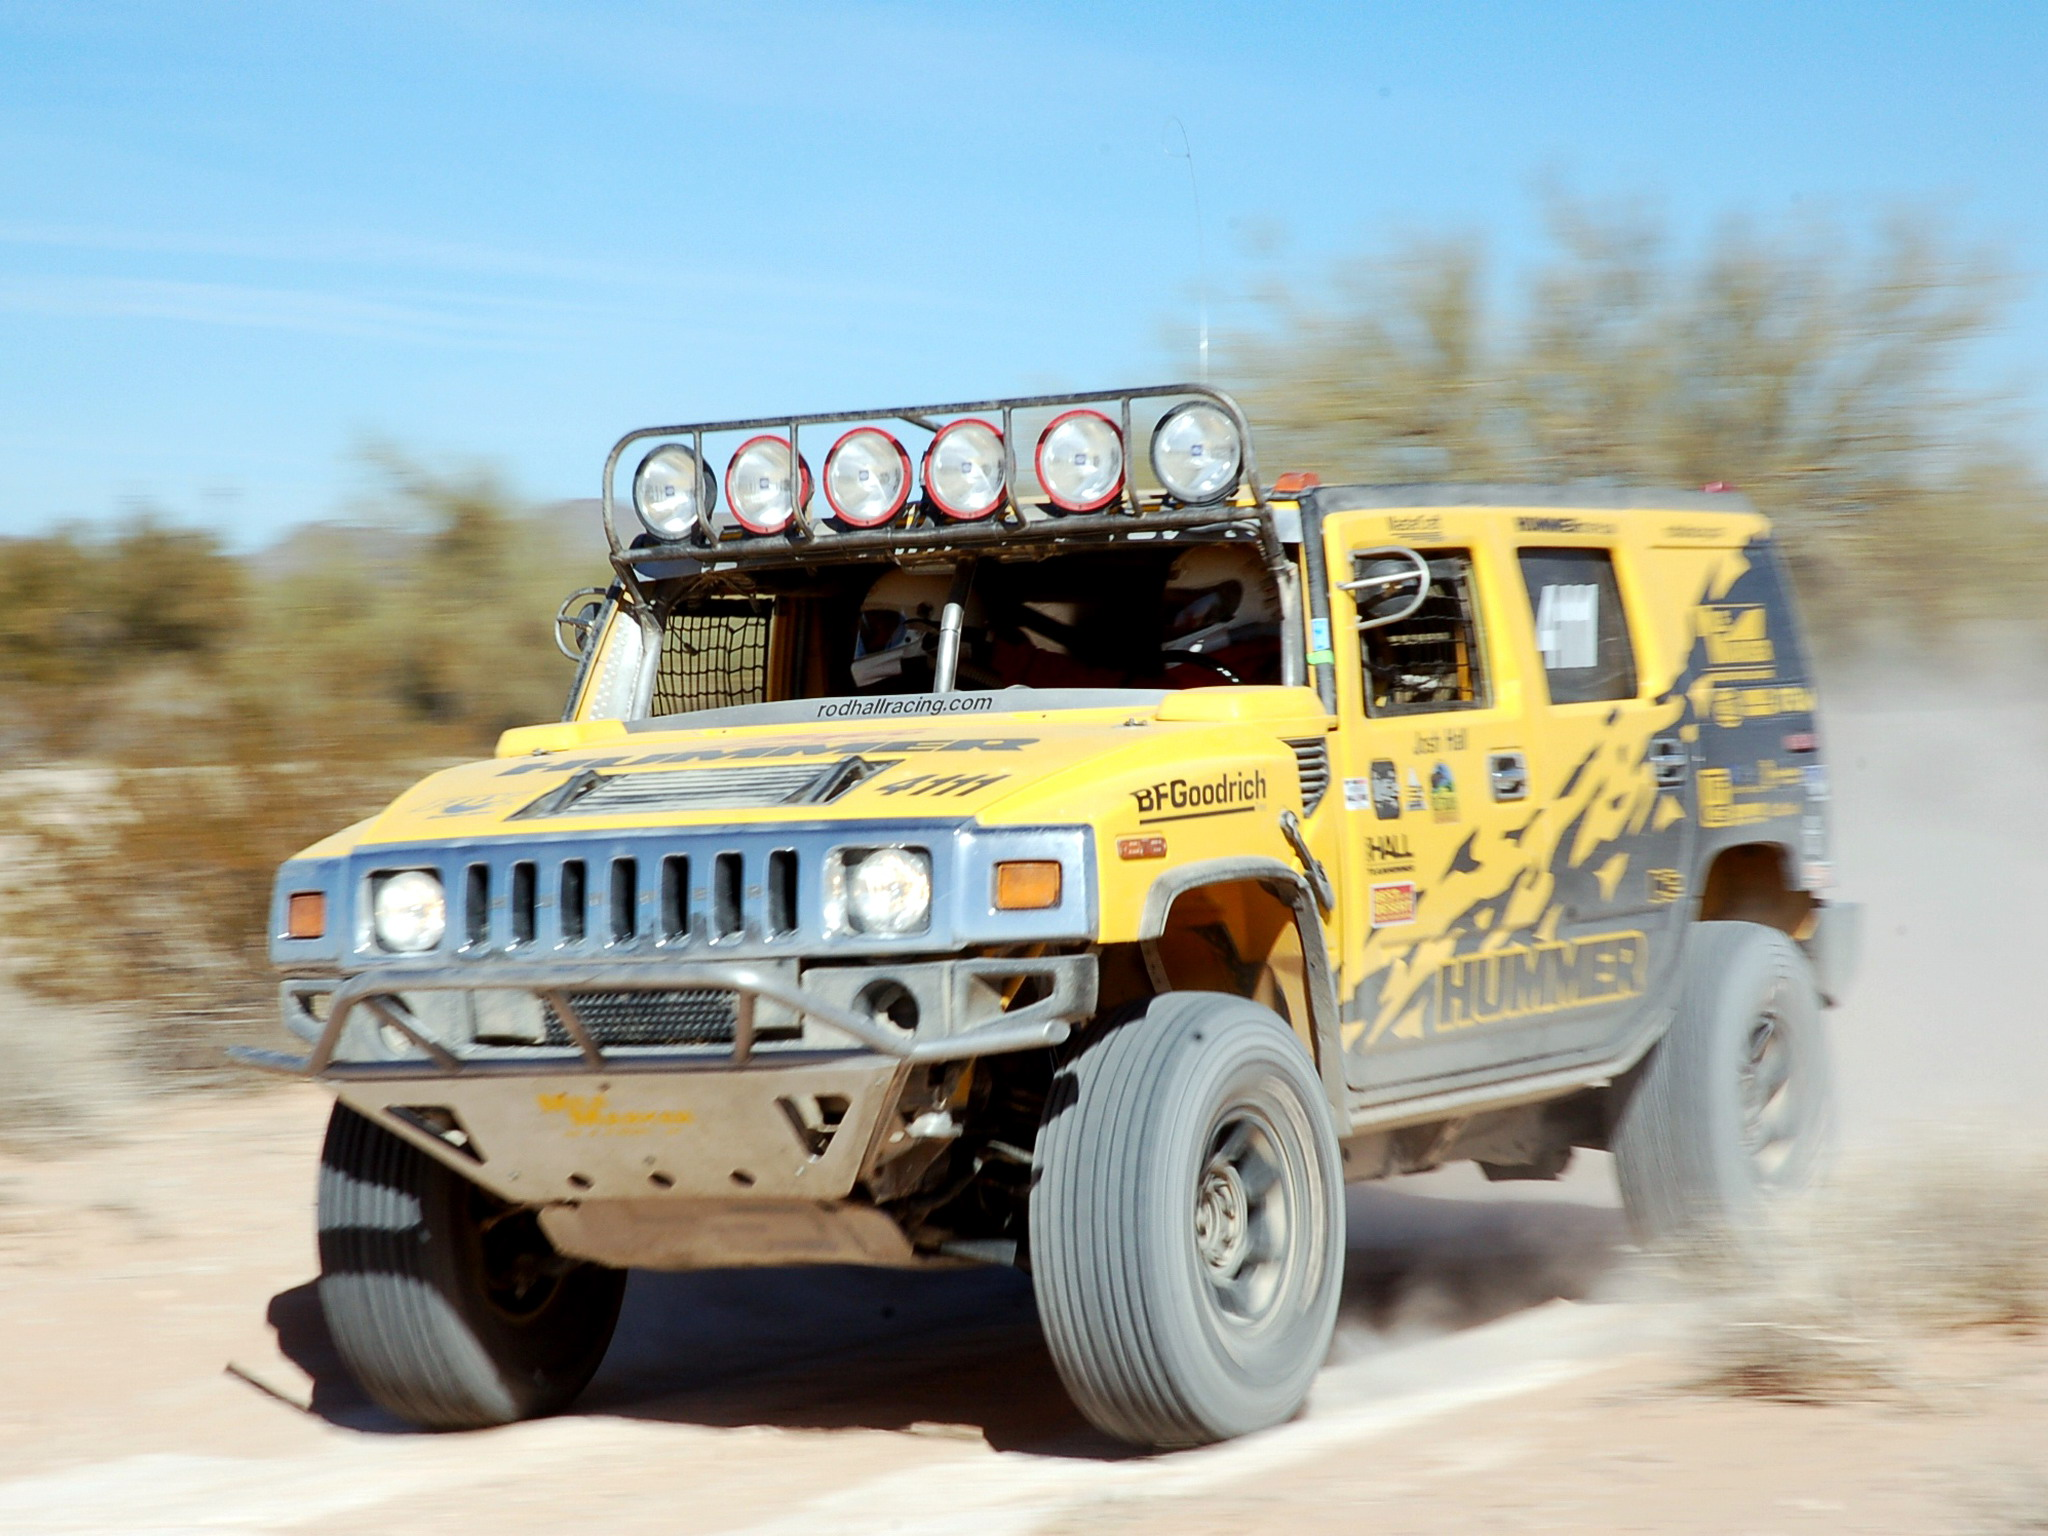 2048x1536 Car Wallpapers 2007 Hummer H2 Race Truck Racing Offroad 4x4 Suv F